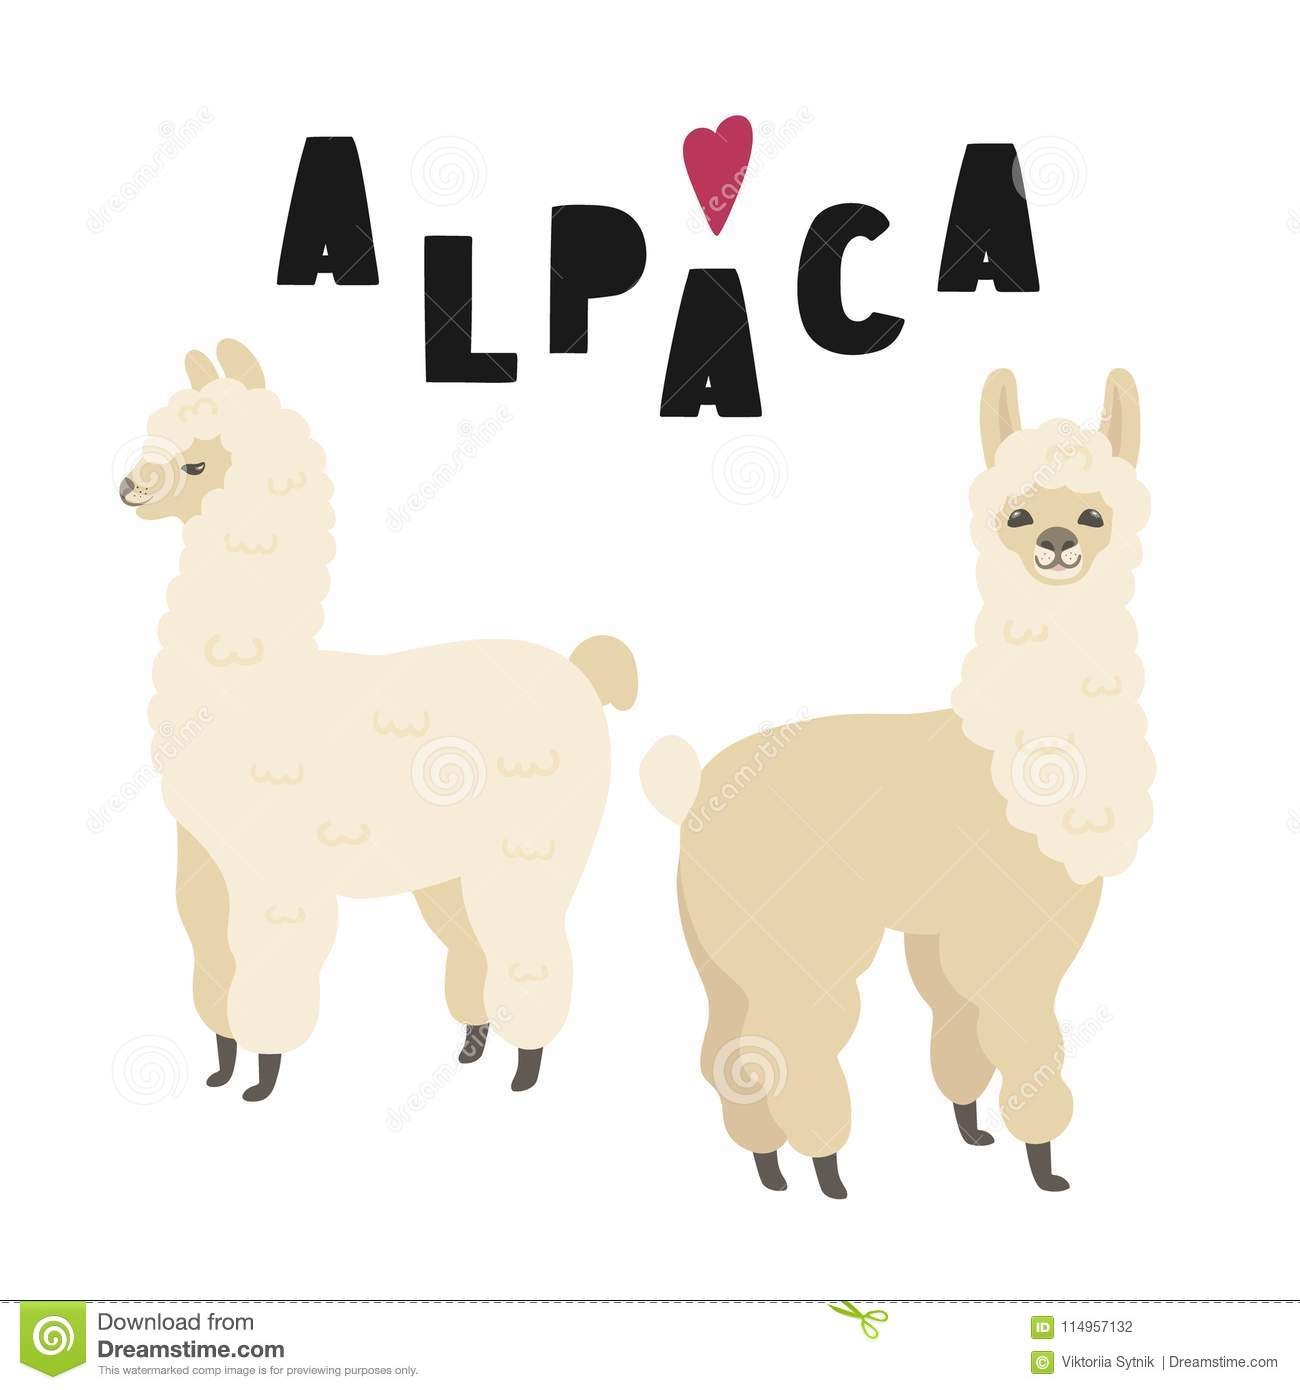 Two Cute Alpacas Illustration With Lettering, Isolated On White.